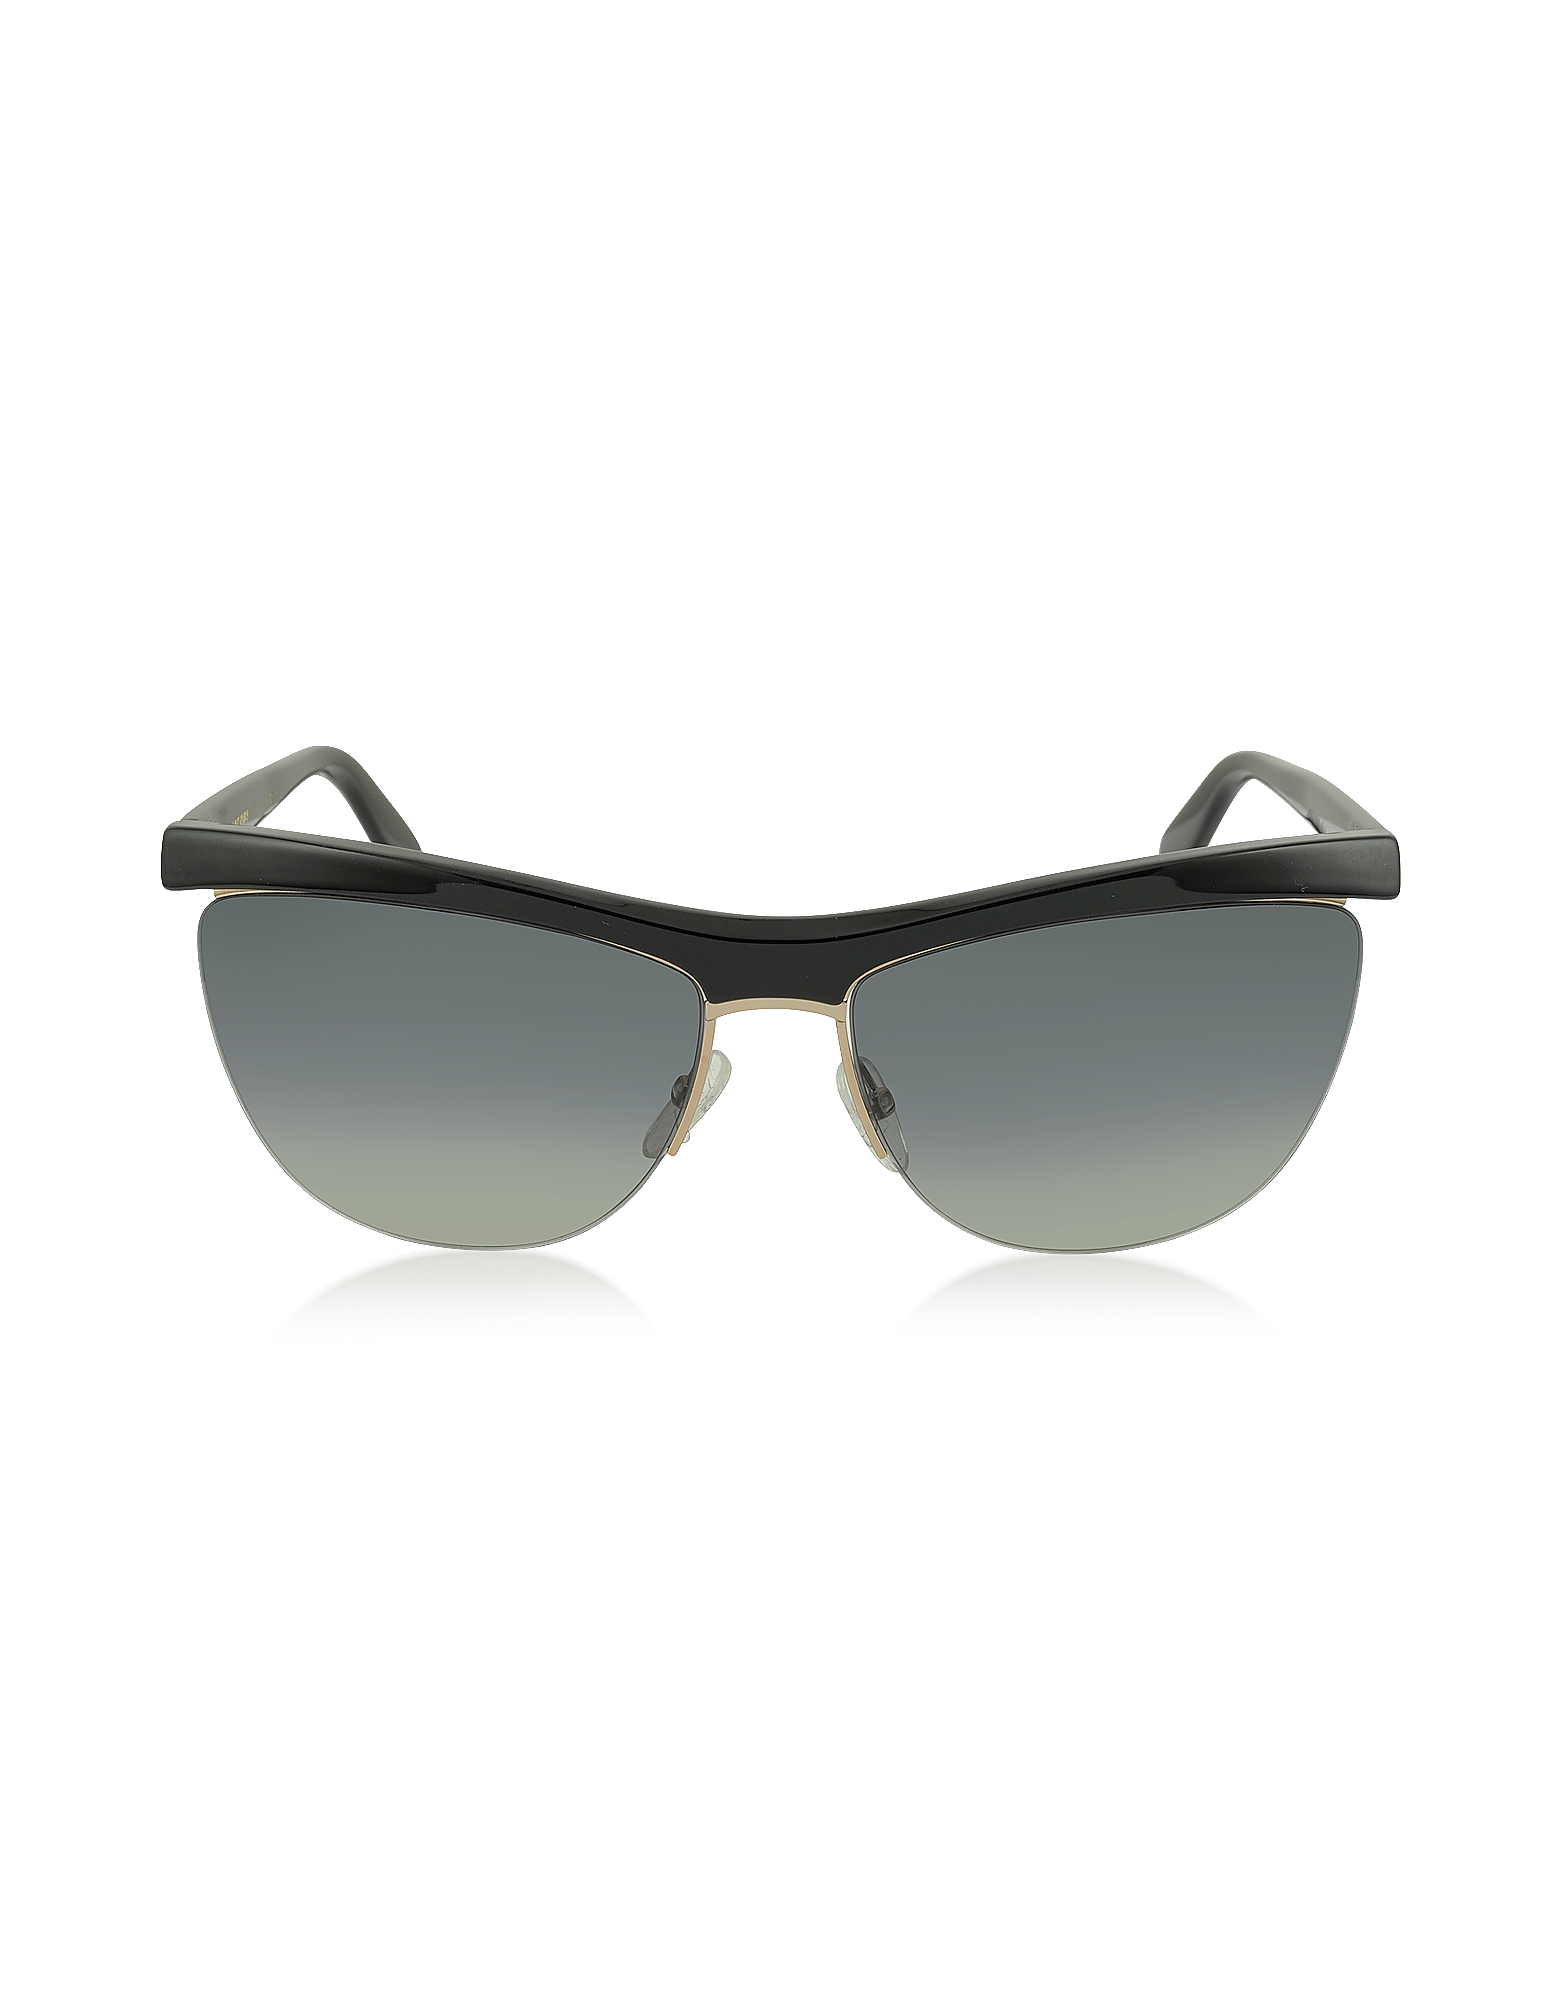 Marc Jacobs Sunglasses, MJ 533/S 8OGDX Frameless Black Acetate Women's Sunglasses